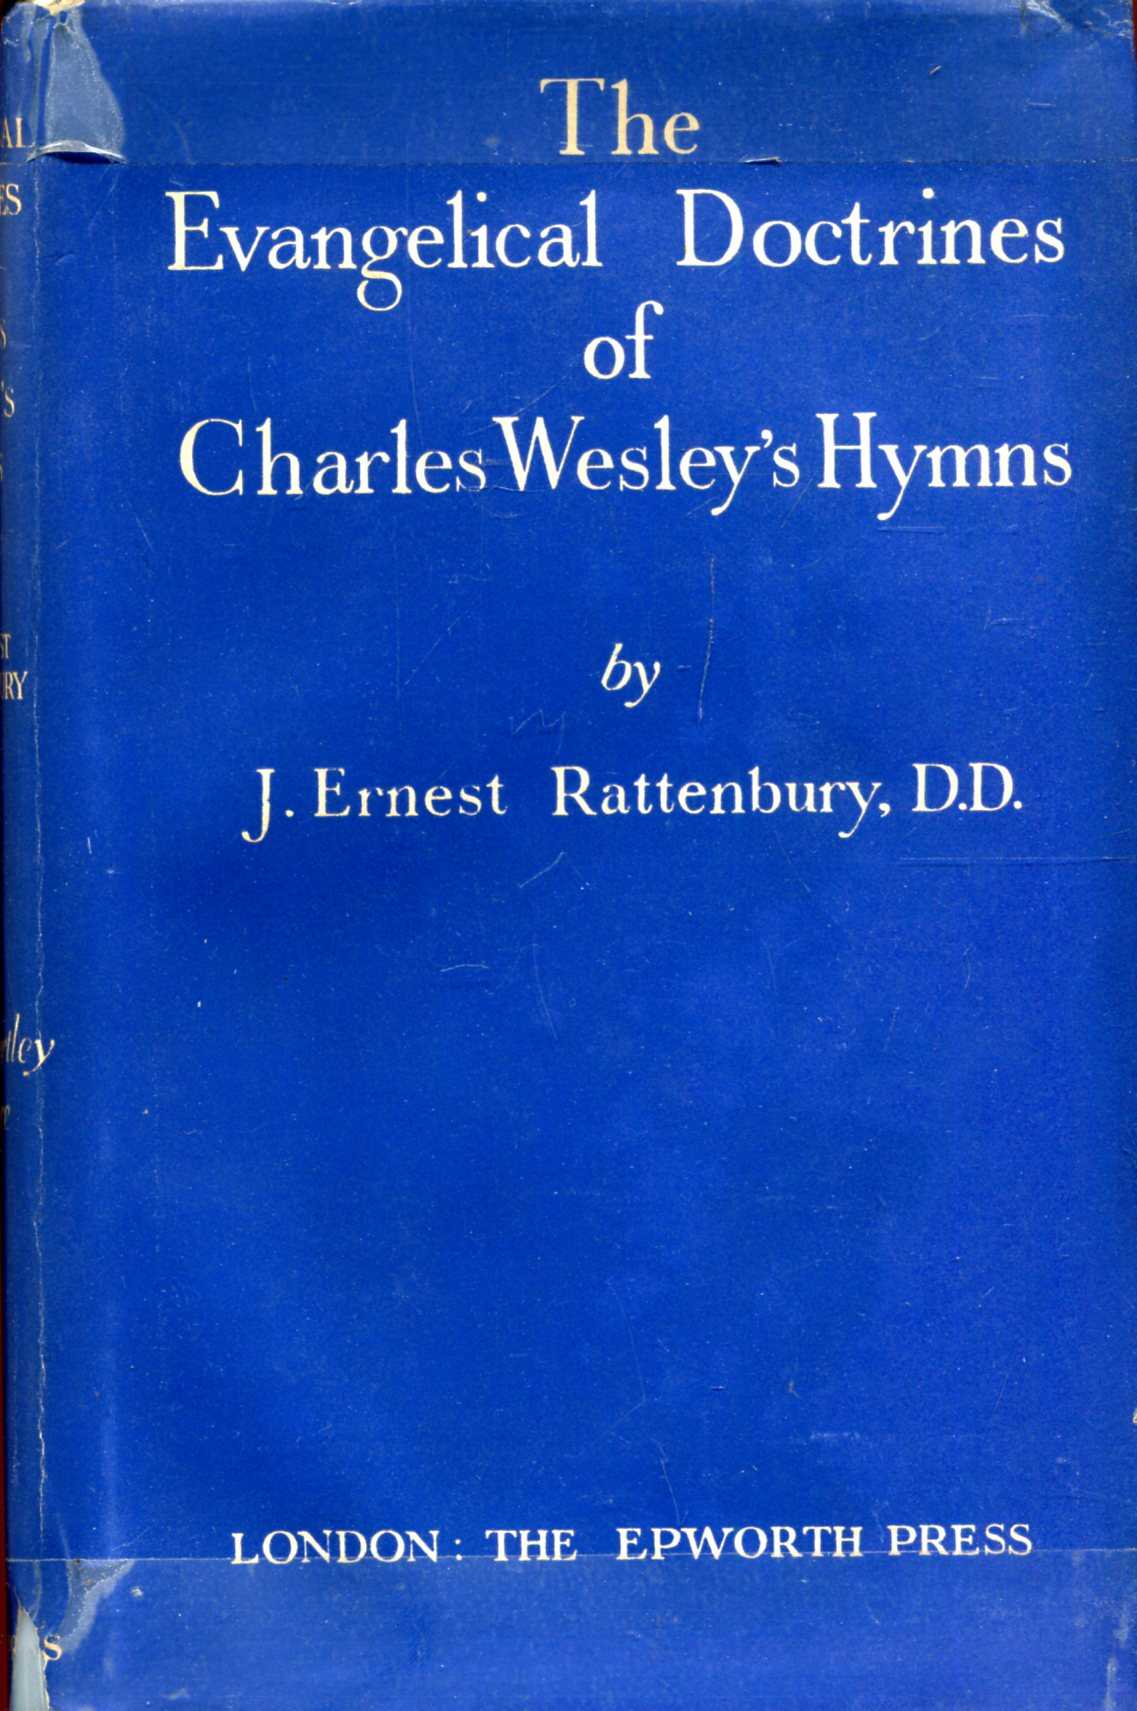 Image for The Evangelical Doctrines of Charles Wesley's Hymns